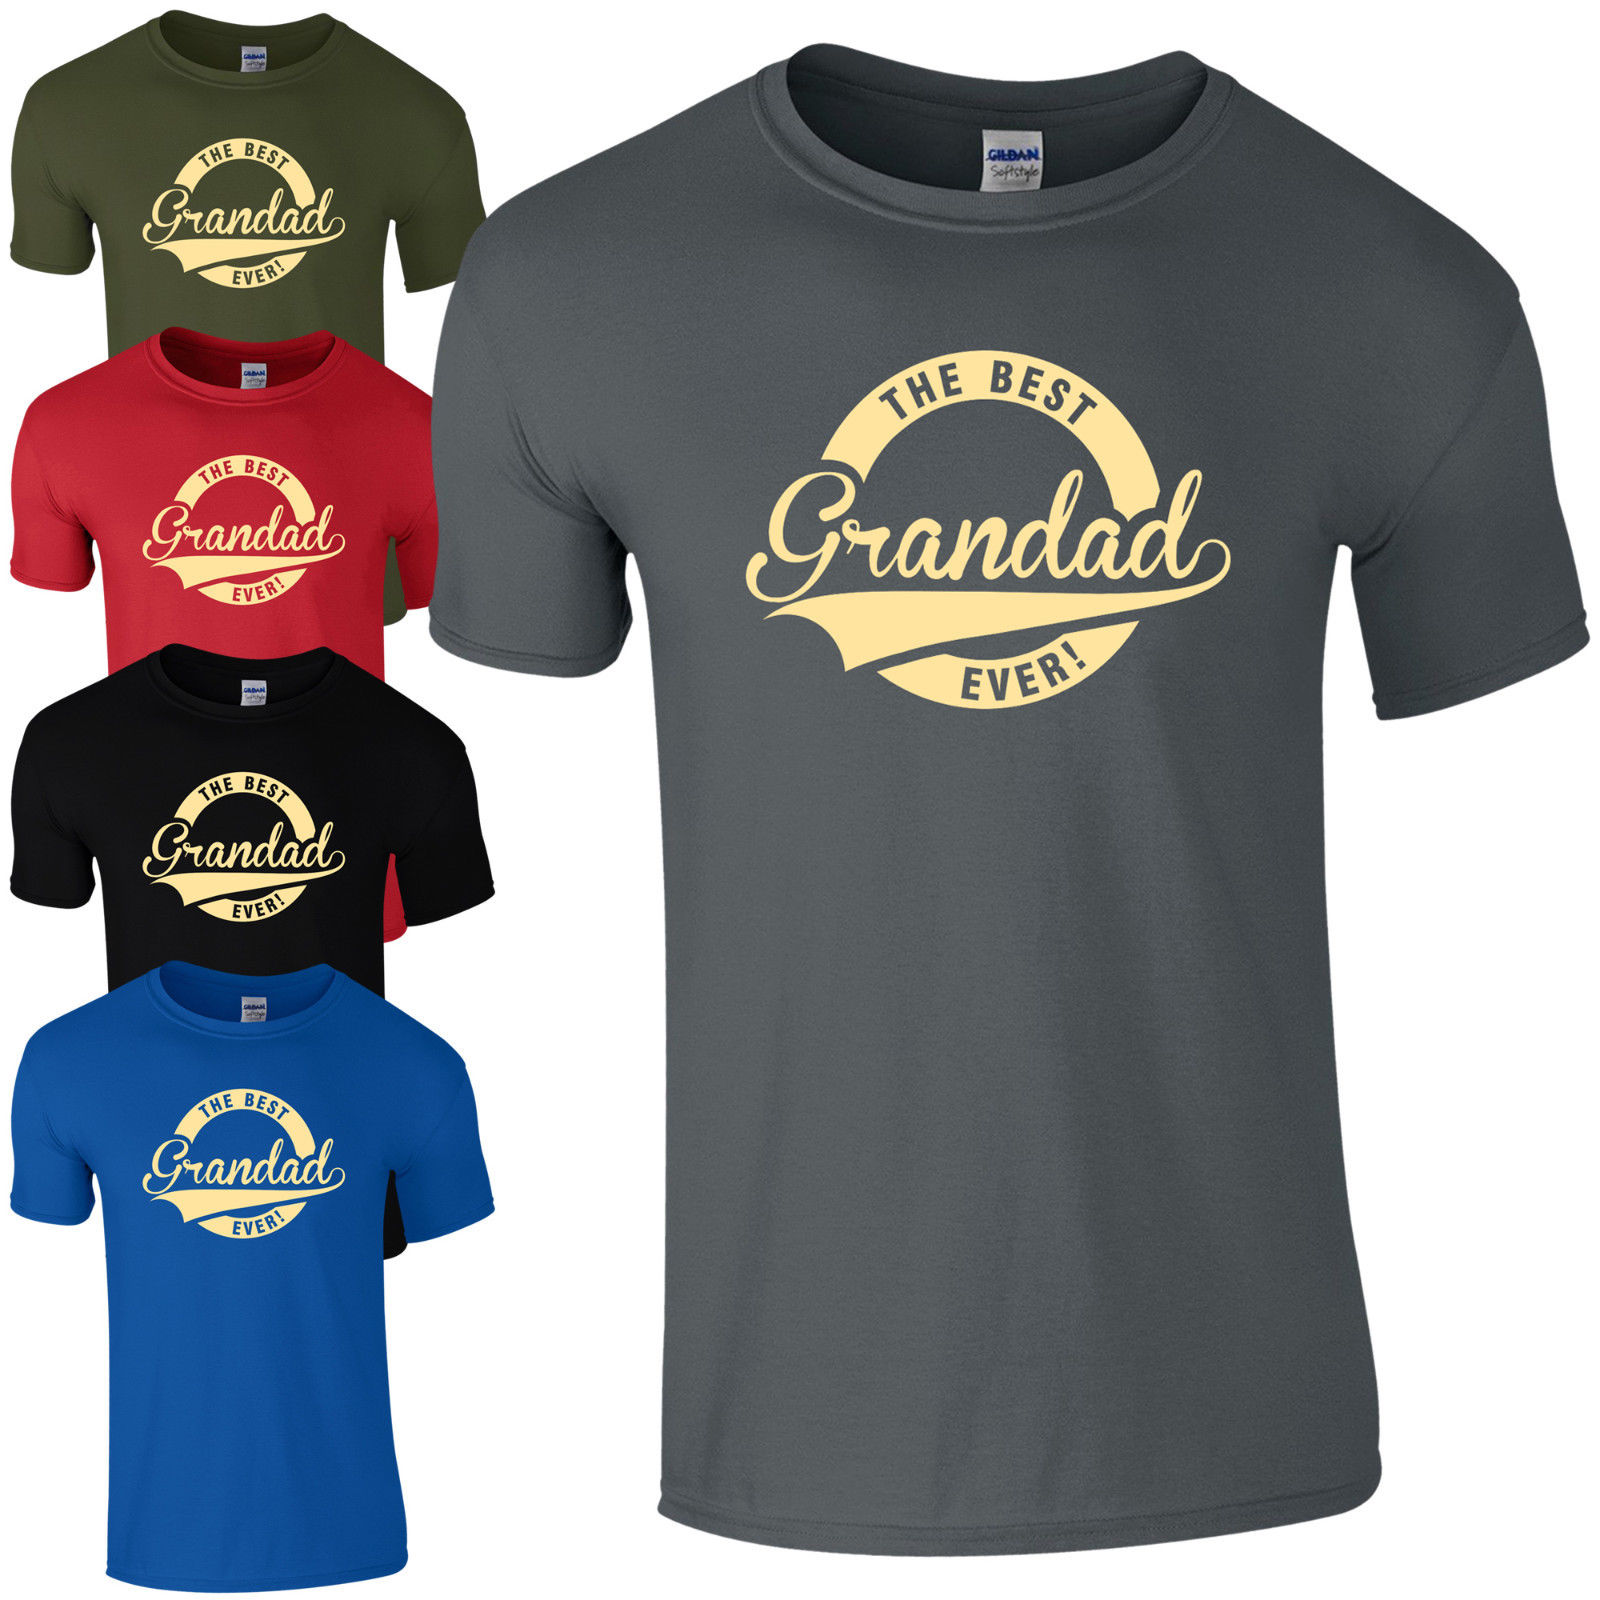 The Best Grandad Ever! T-Shirt - Funny Fathers Day Present Dads Gift Mens Top